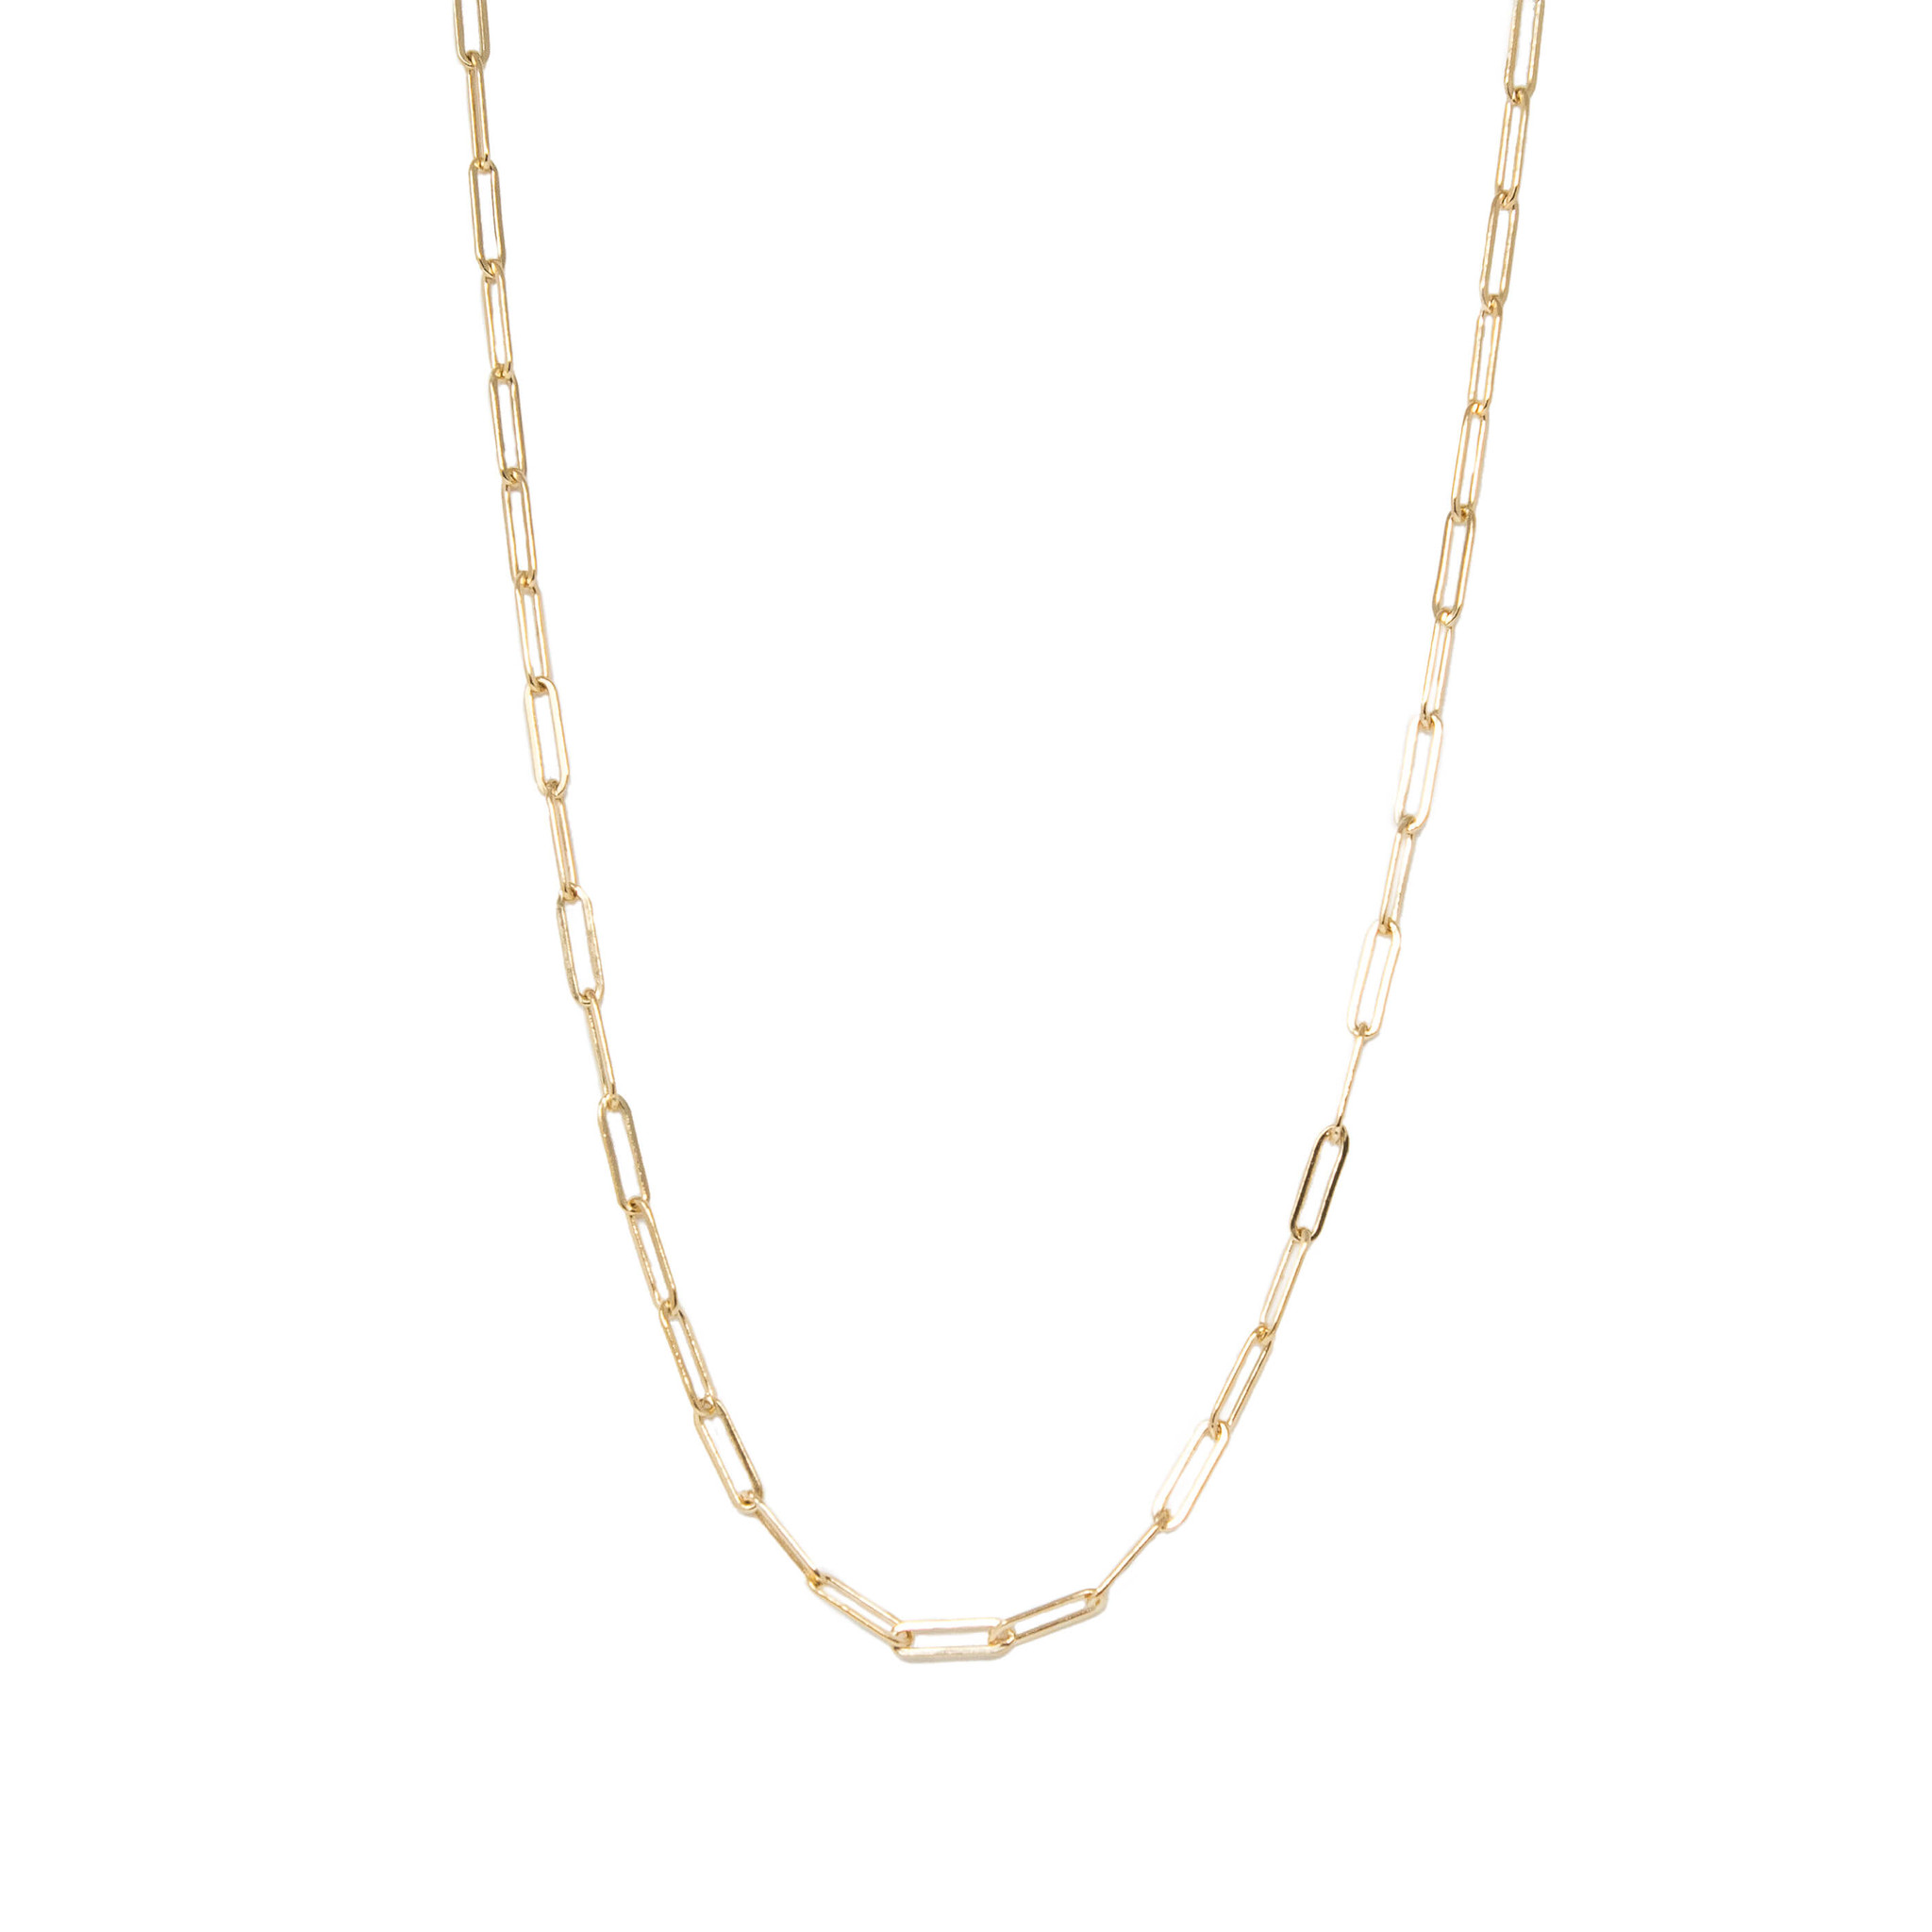 Katie Gold Filled Paperclip Chain Necklace